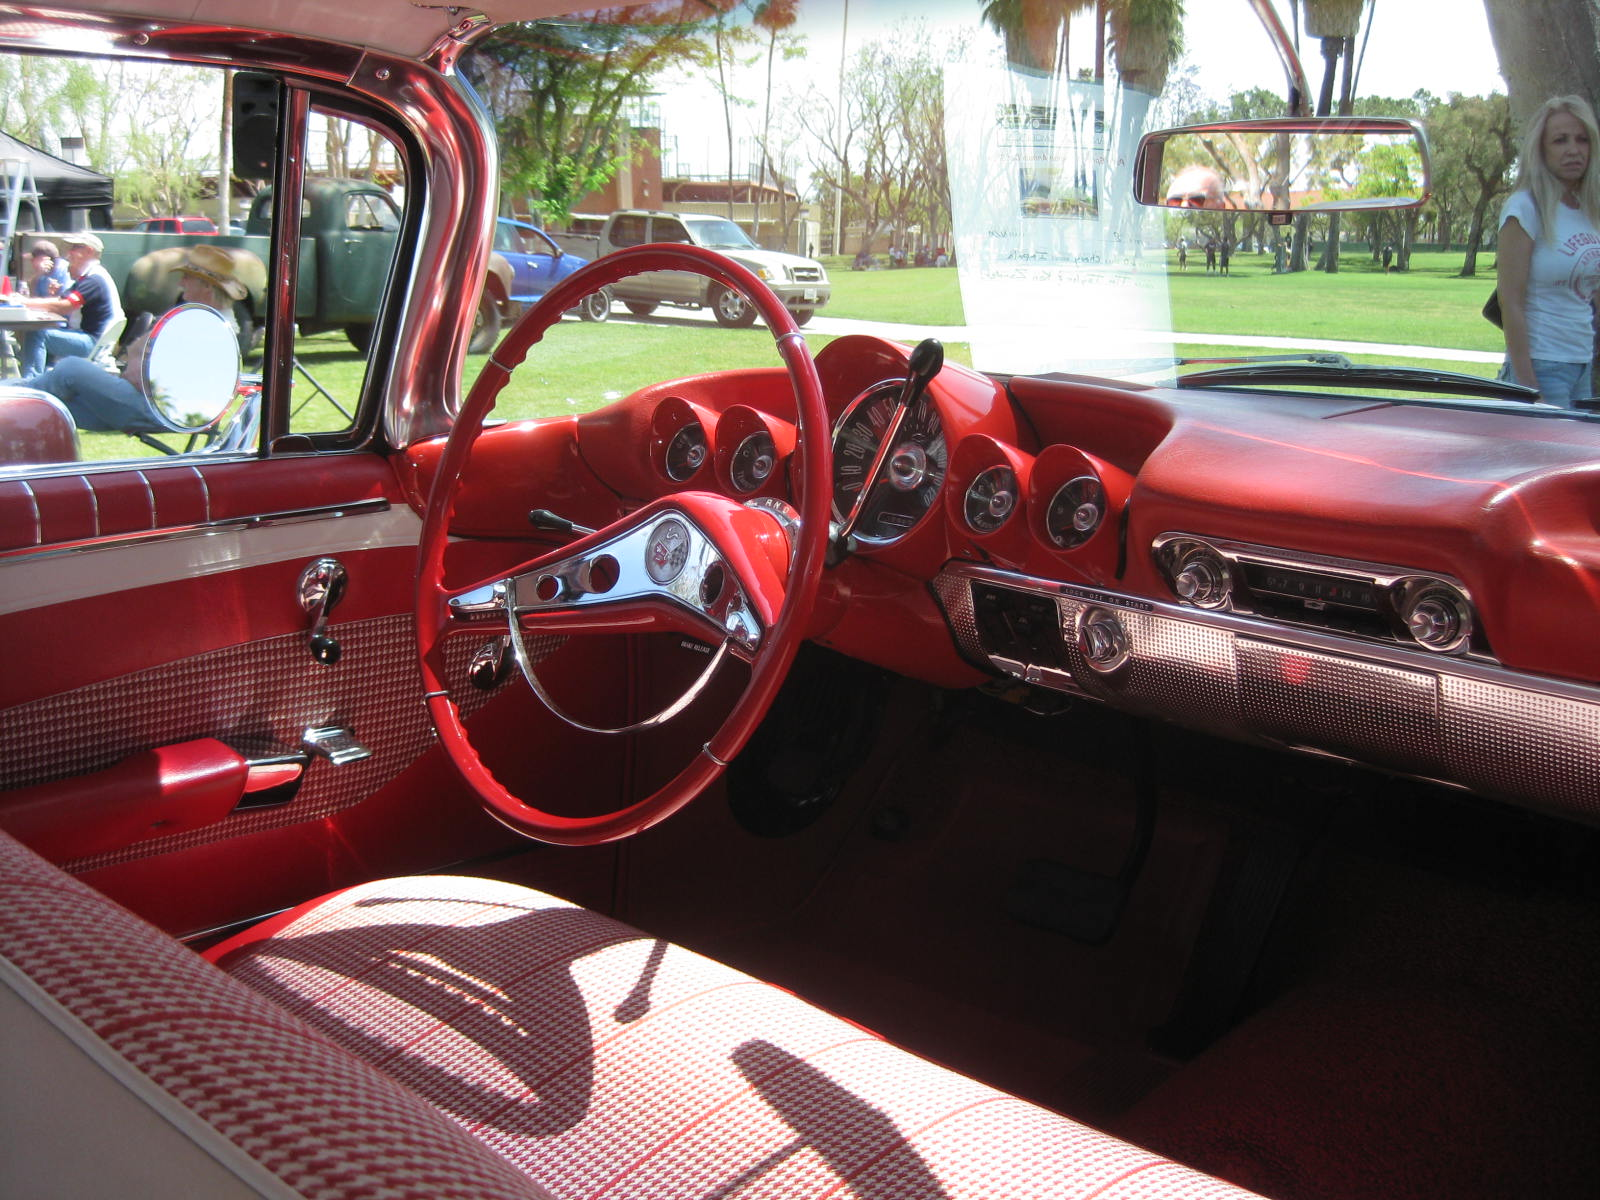 Chevrolet Todd Biancos Blog 1957 Chevy Truck Gauge Cluster You Just Dont See Interiors Like This Anymore Everything Matches The Exterior Color